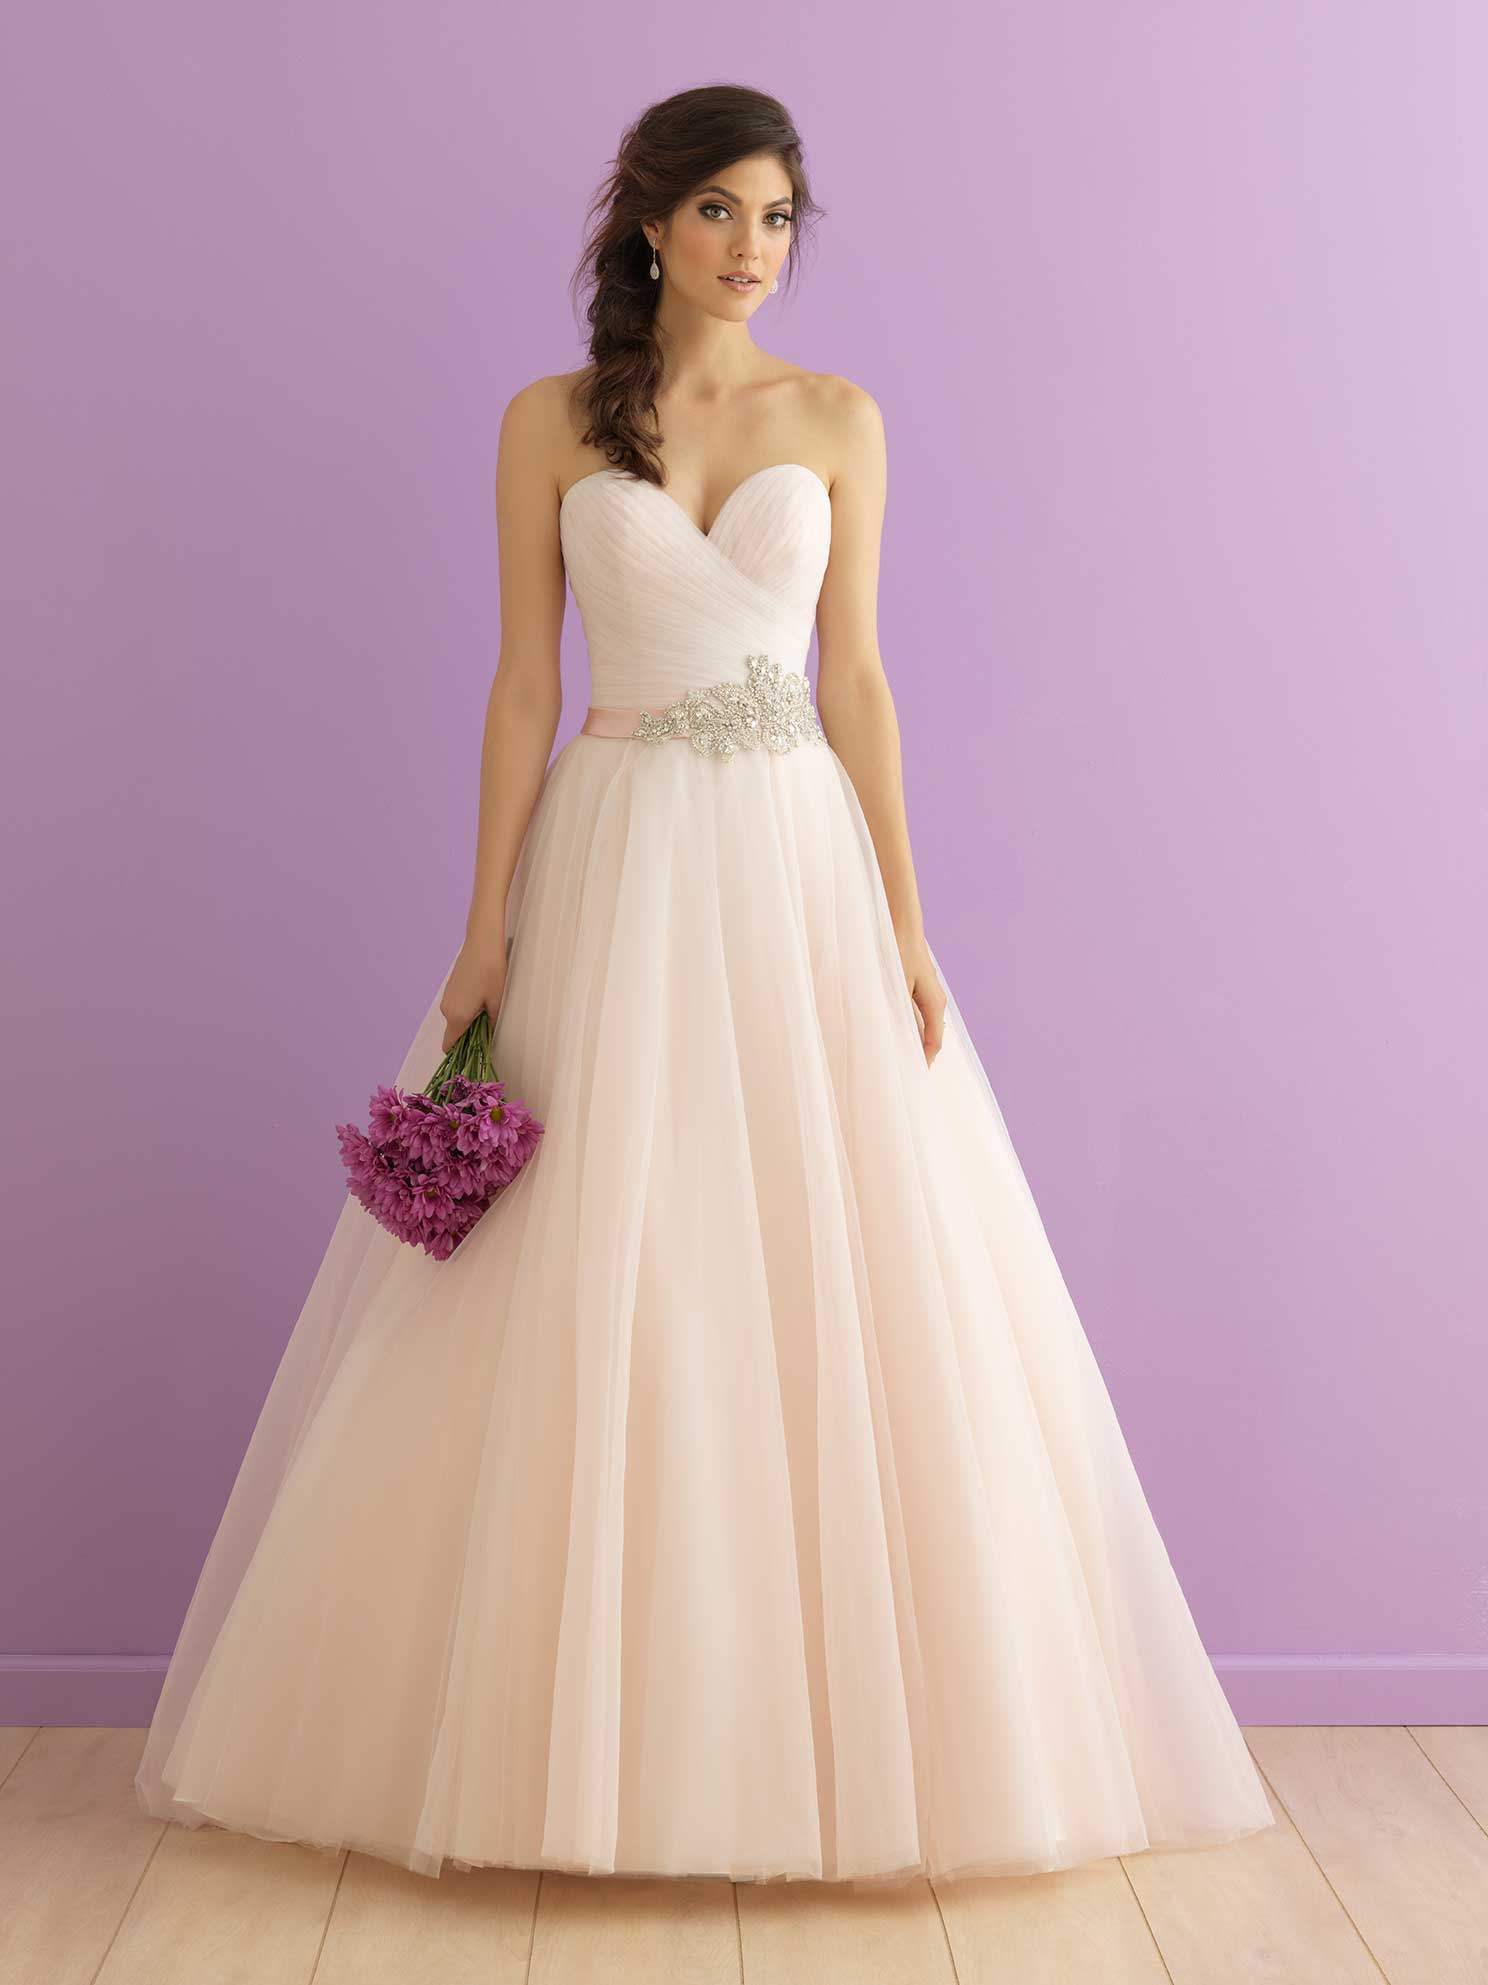 Style: 2904 - Petals and Promises Bridal